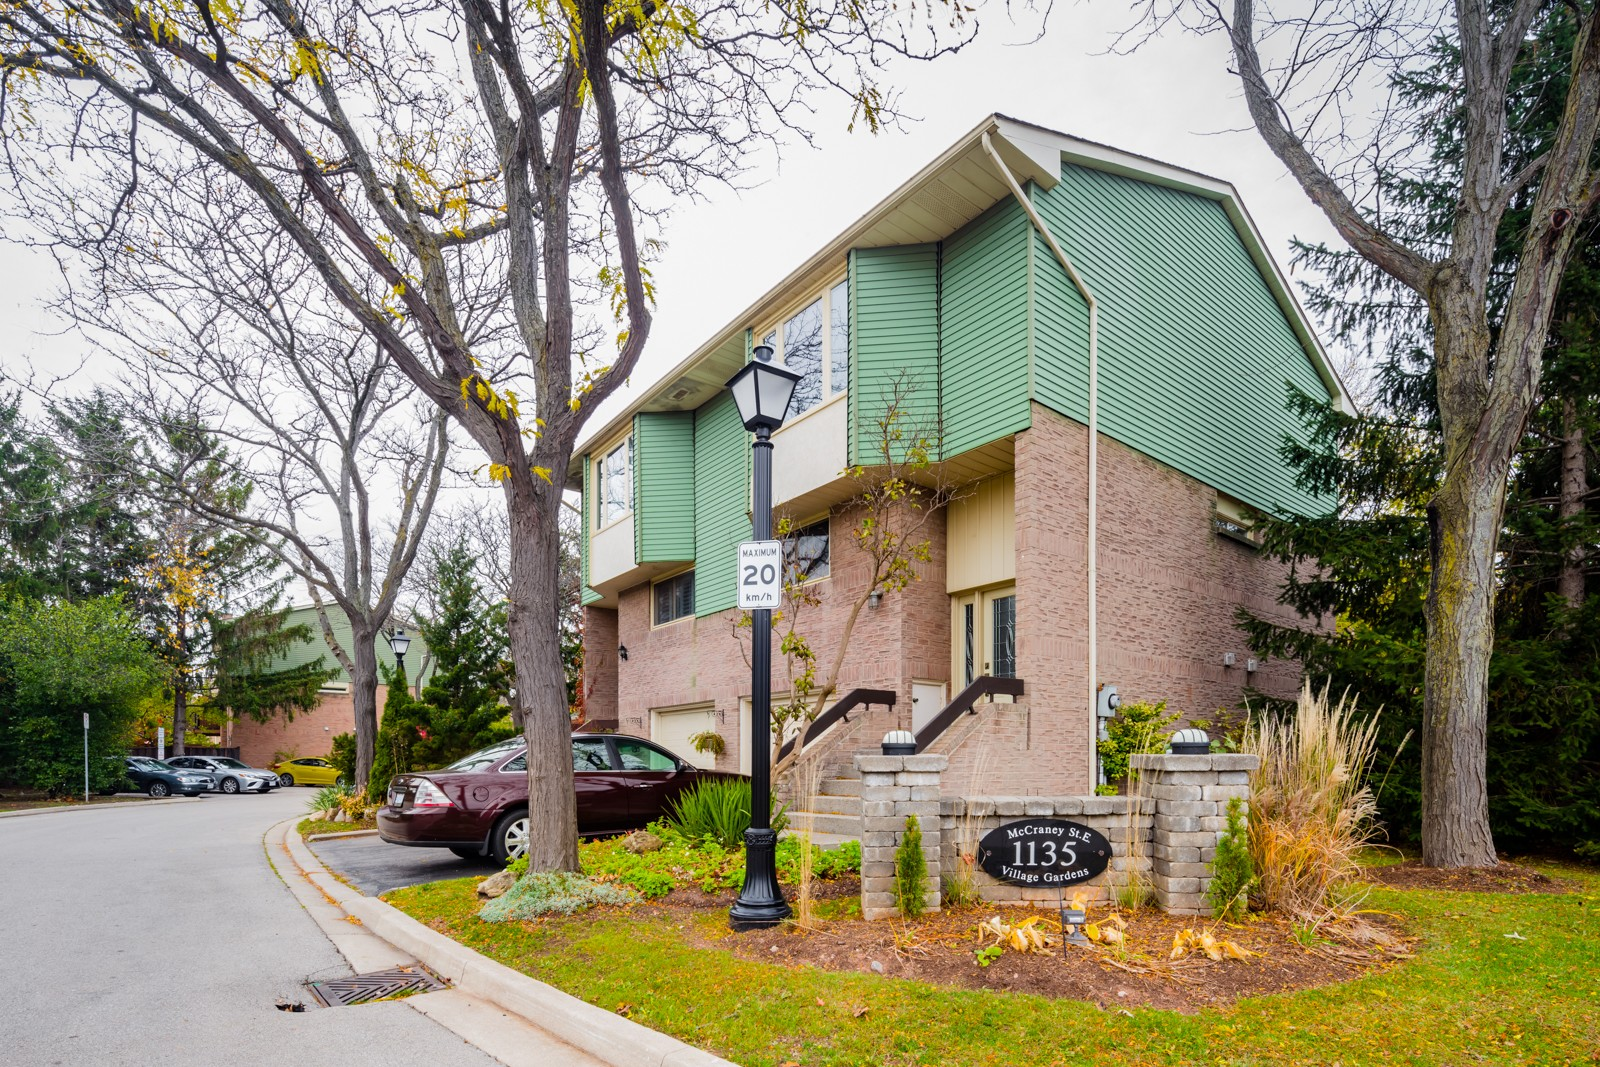 Village Gardens at 1135 McCraney St E, Oakville 0